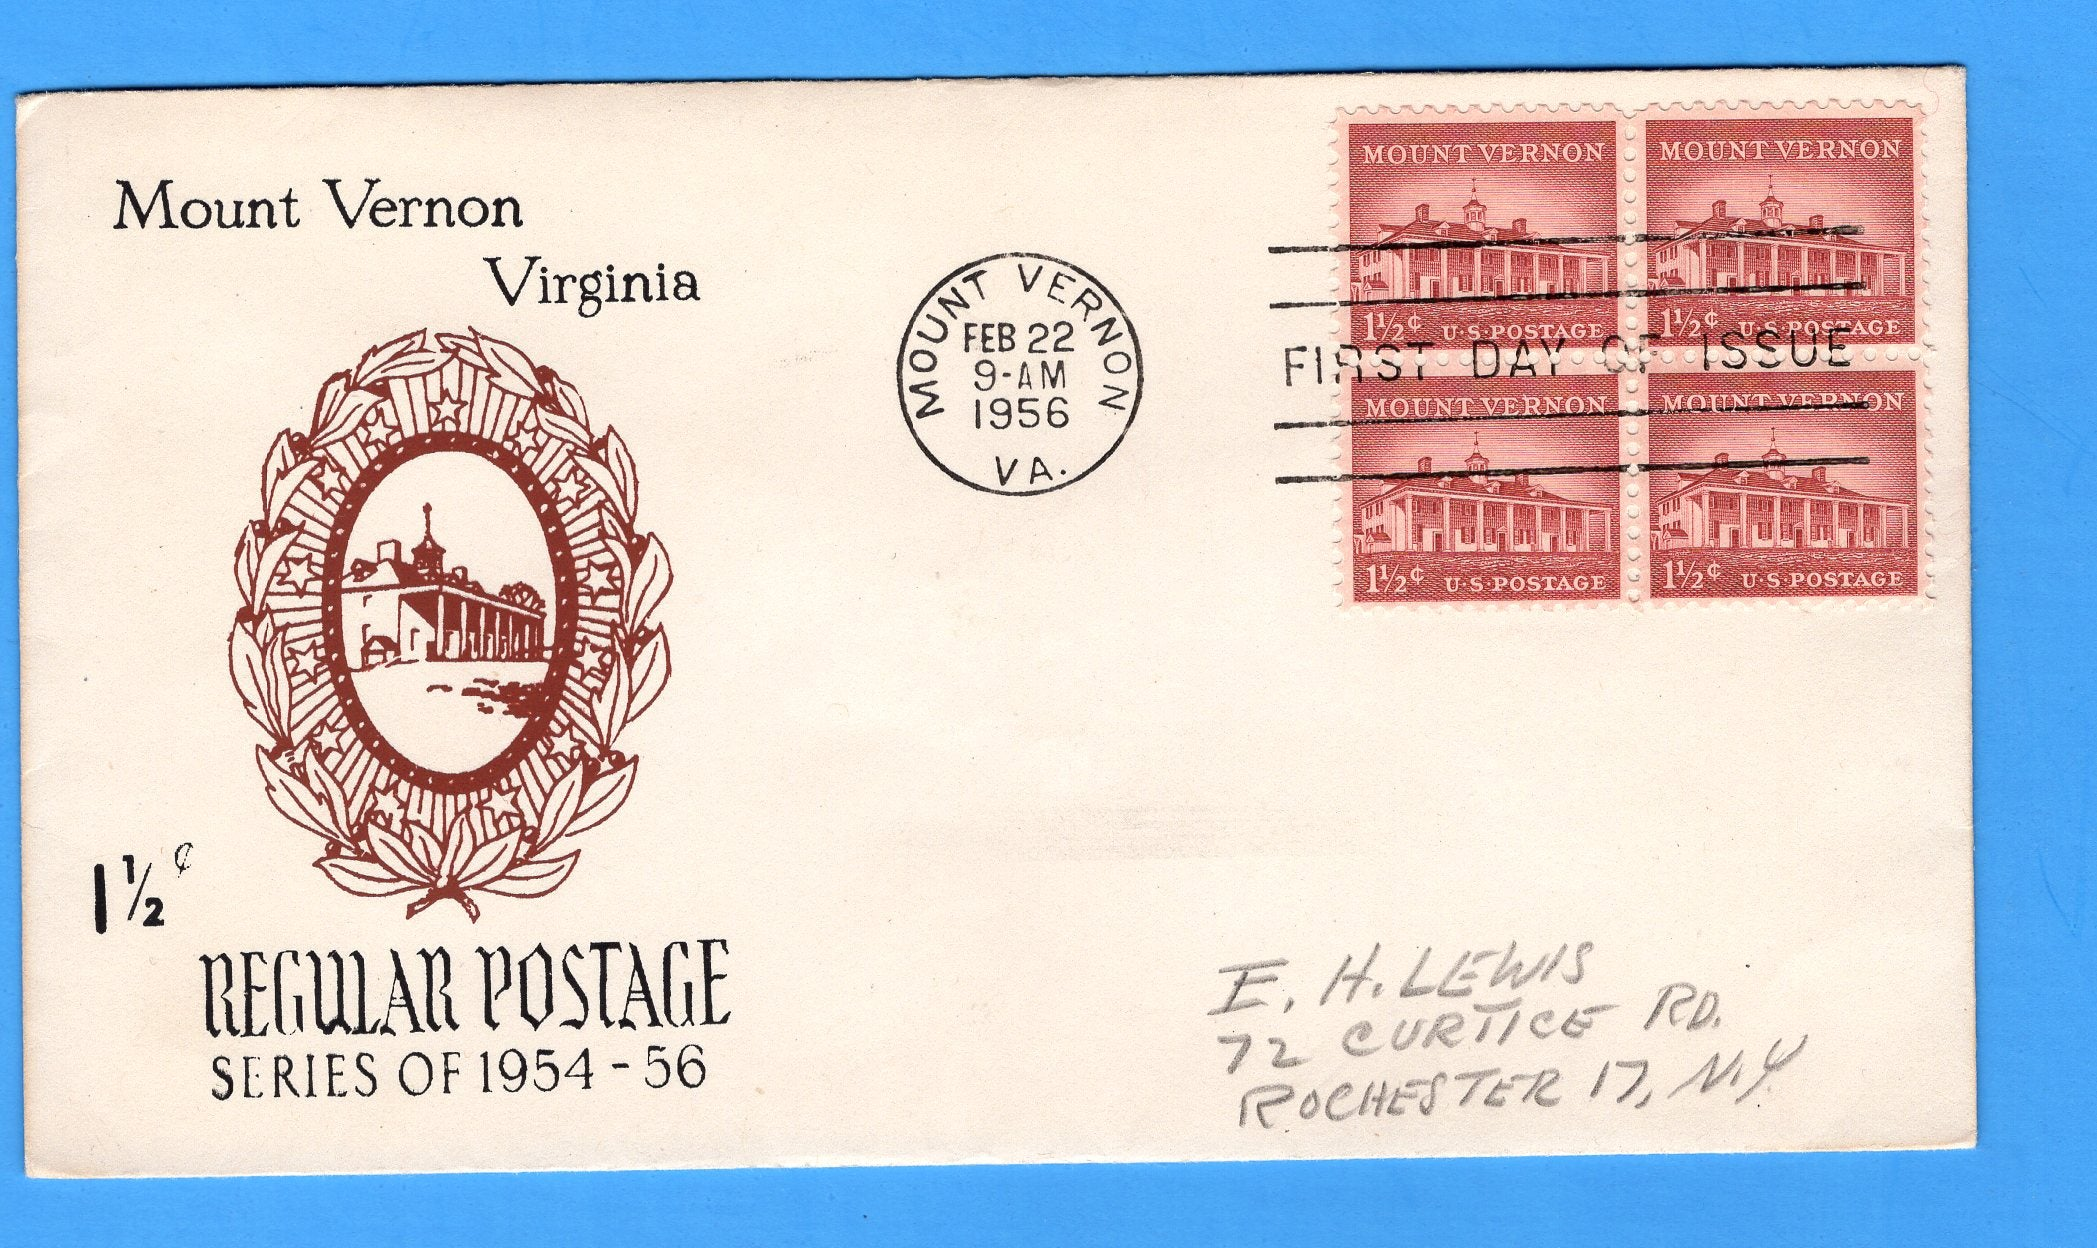 Scott 1032 1 1/2c Mount Vernon Silk Screen First Day Cover by Eric Lewis - Very Rare - Only Three Known Copies